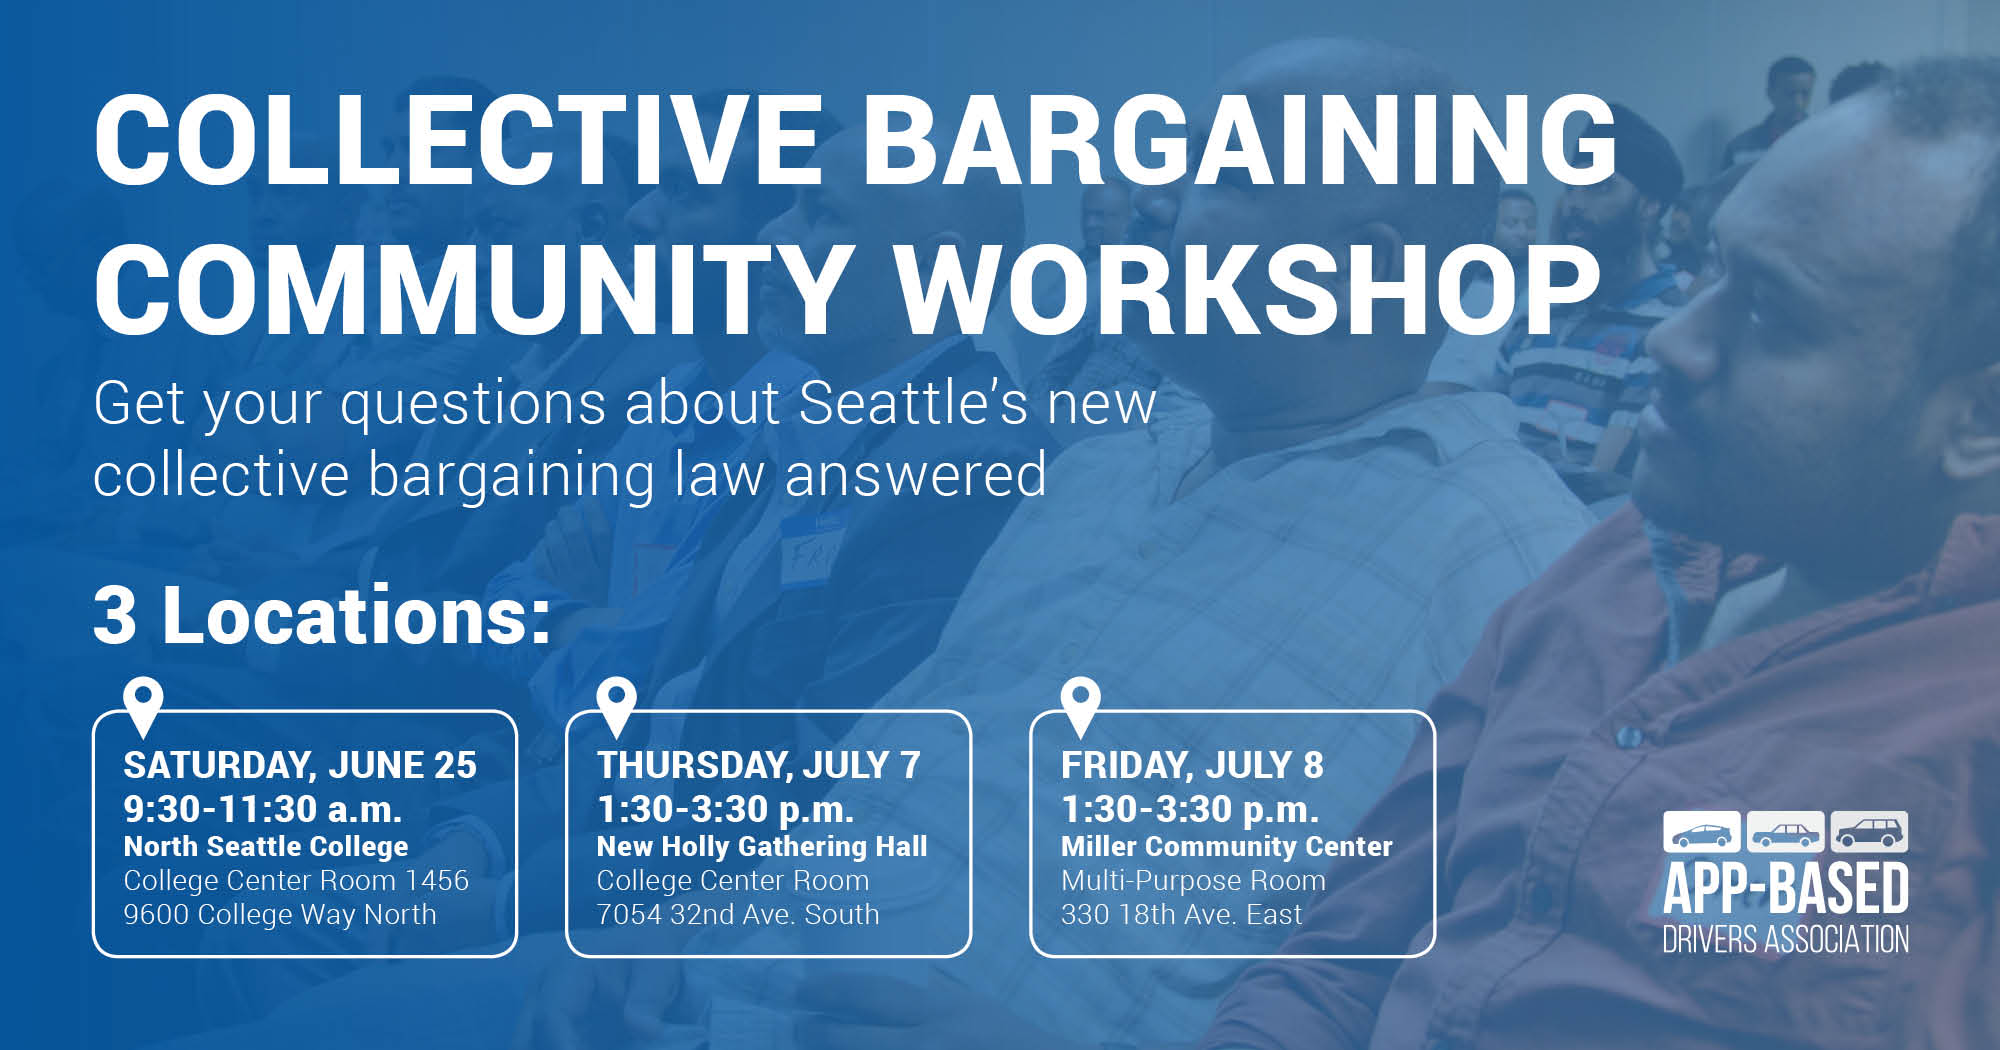 For_Hire_Driver_Collective_Bargaining_Workshop_FB.jpg